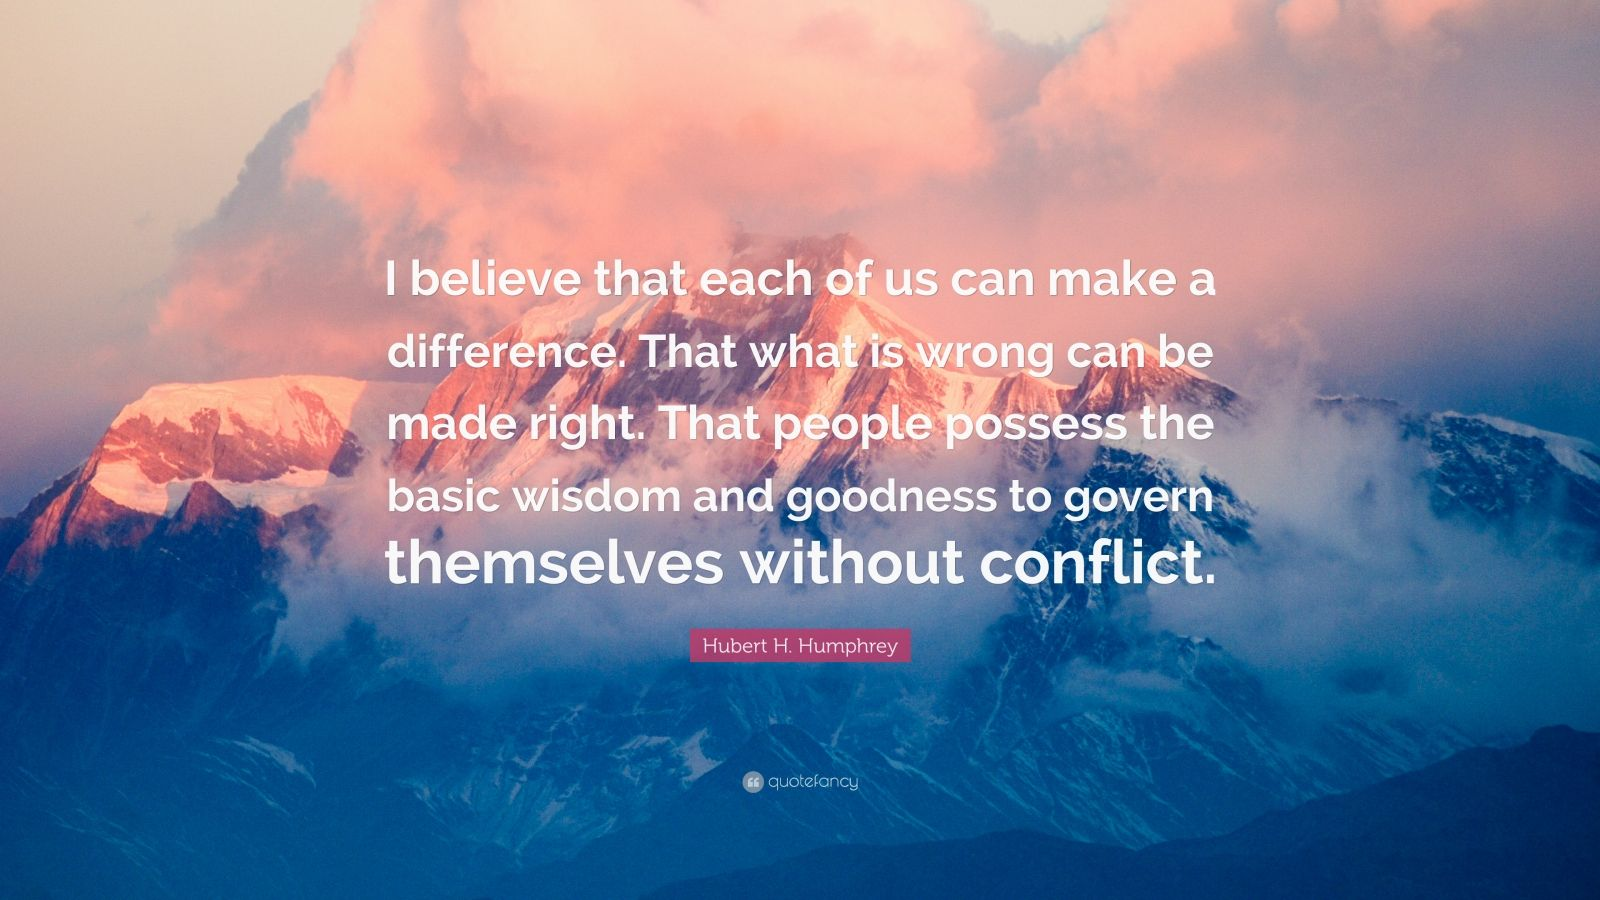 """Hubert H. Humphrey Quote: """"I believe that each of us can make a difference. That what is wrong can be made right. That people possess the basic wisdom and goodness to govern themselves without conflict."""""""